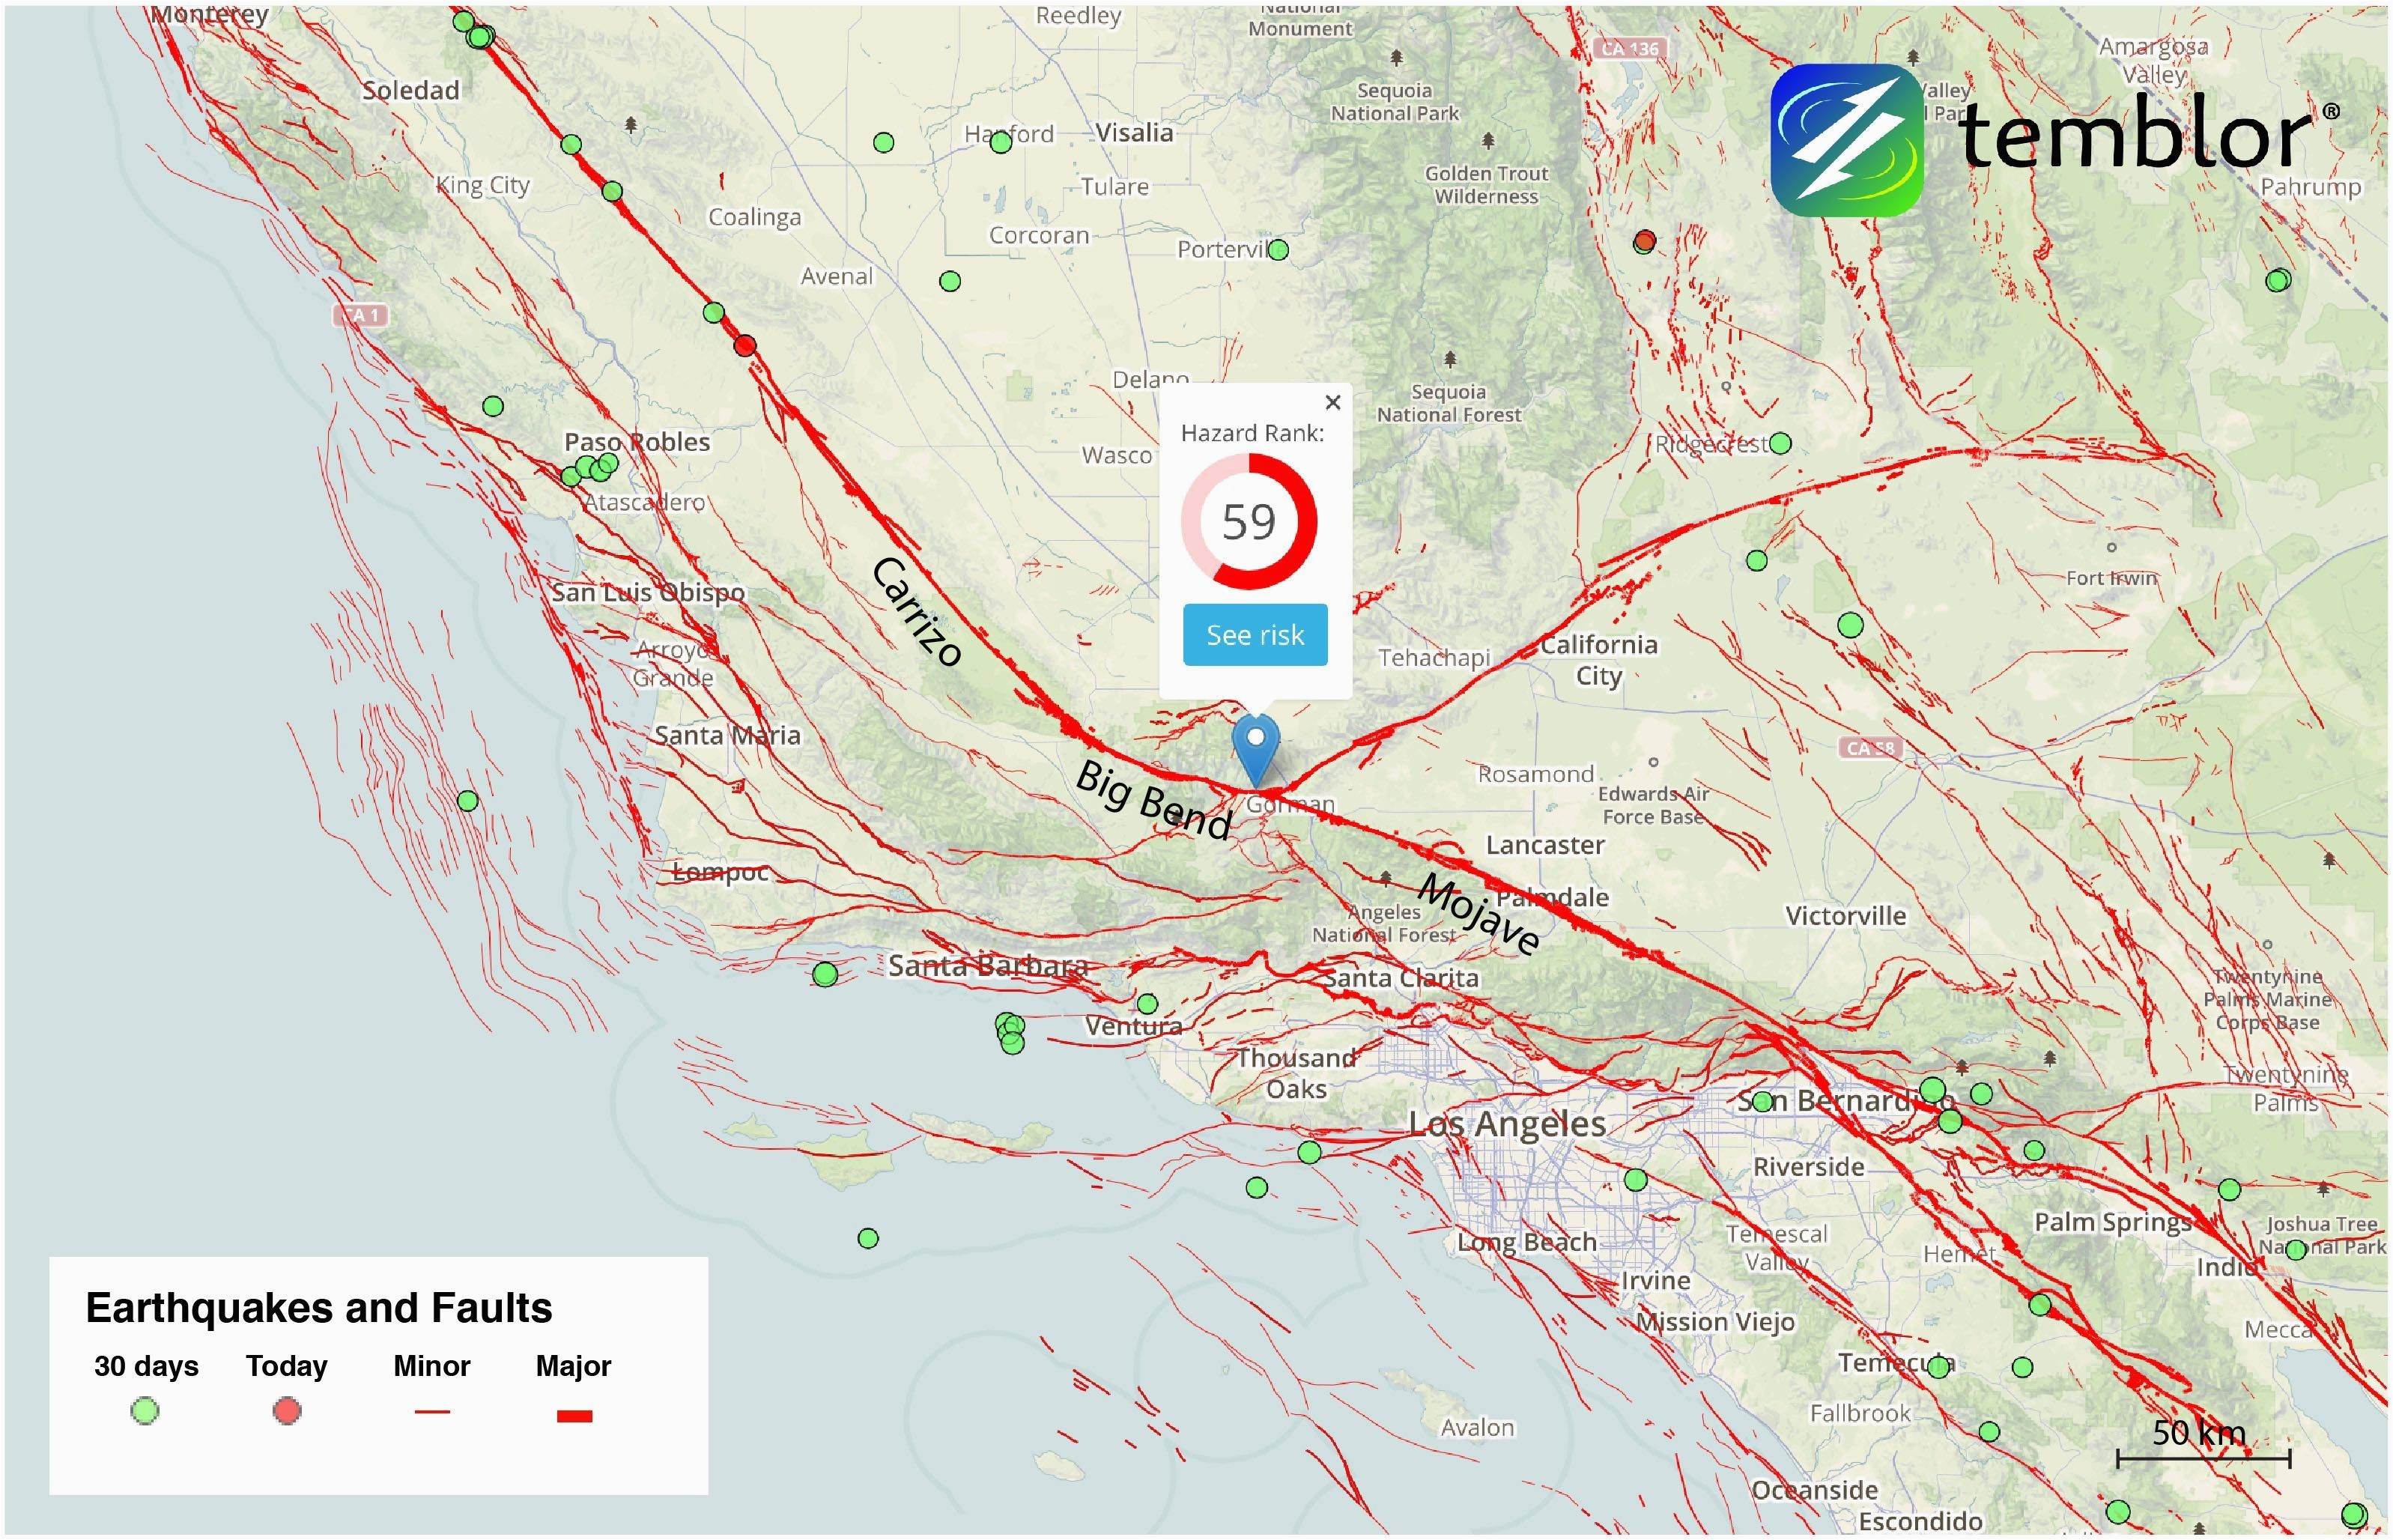 Southern California Fault Lines Map Traffic Map southern California Fresh Map Major Us Fault Lines Fault